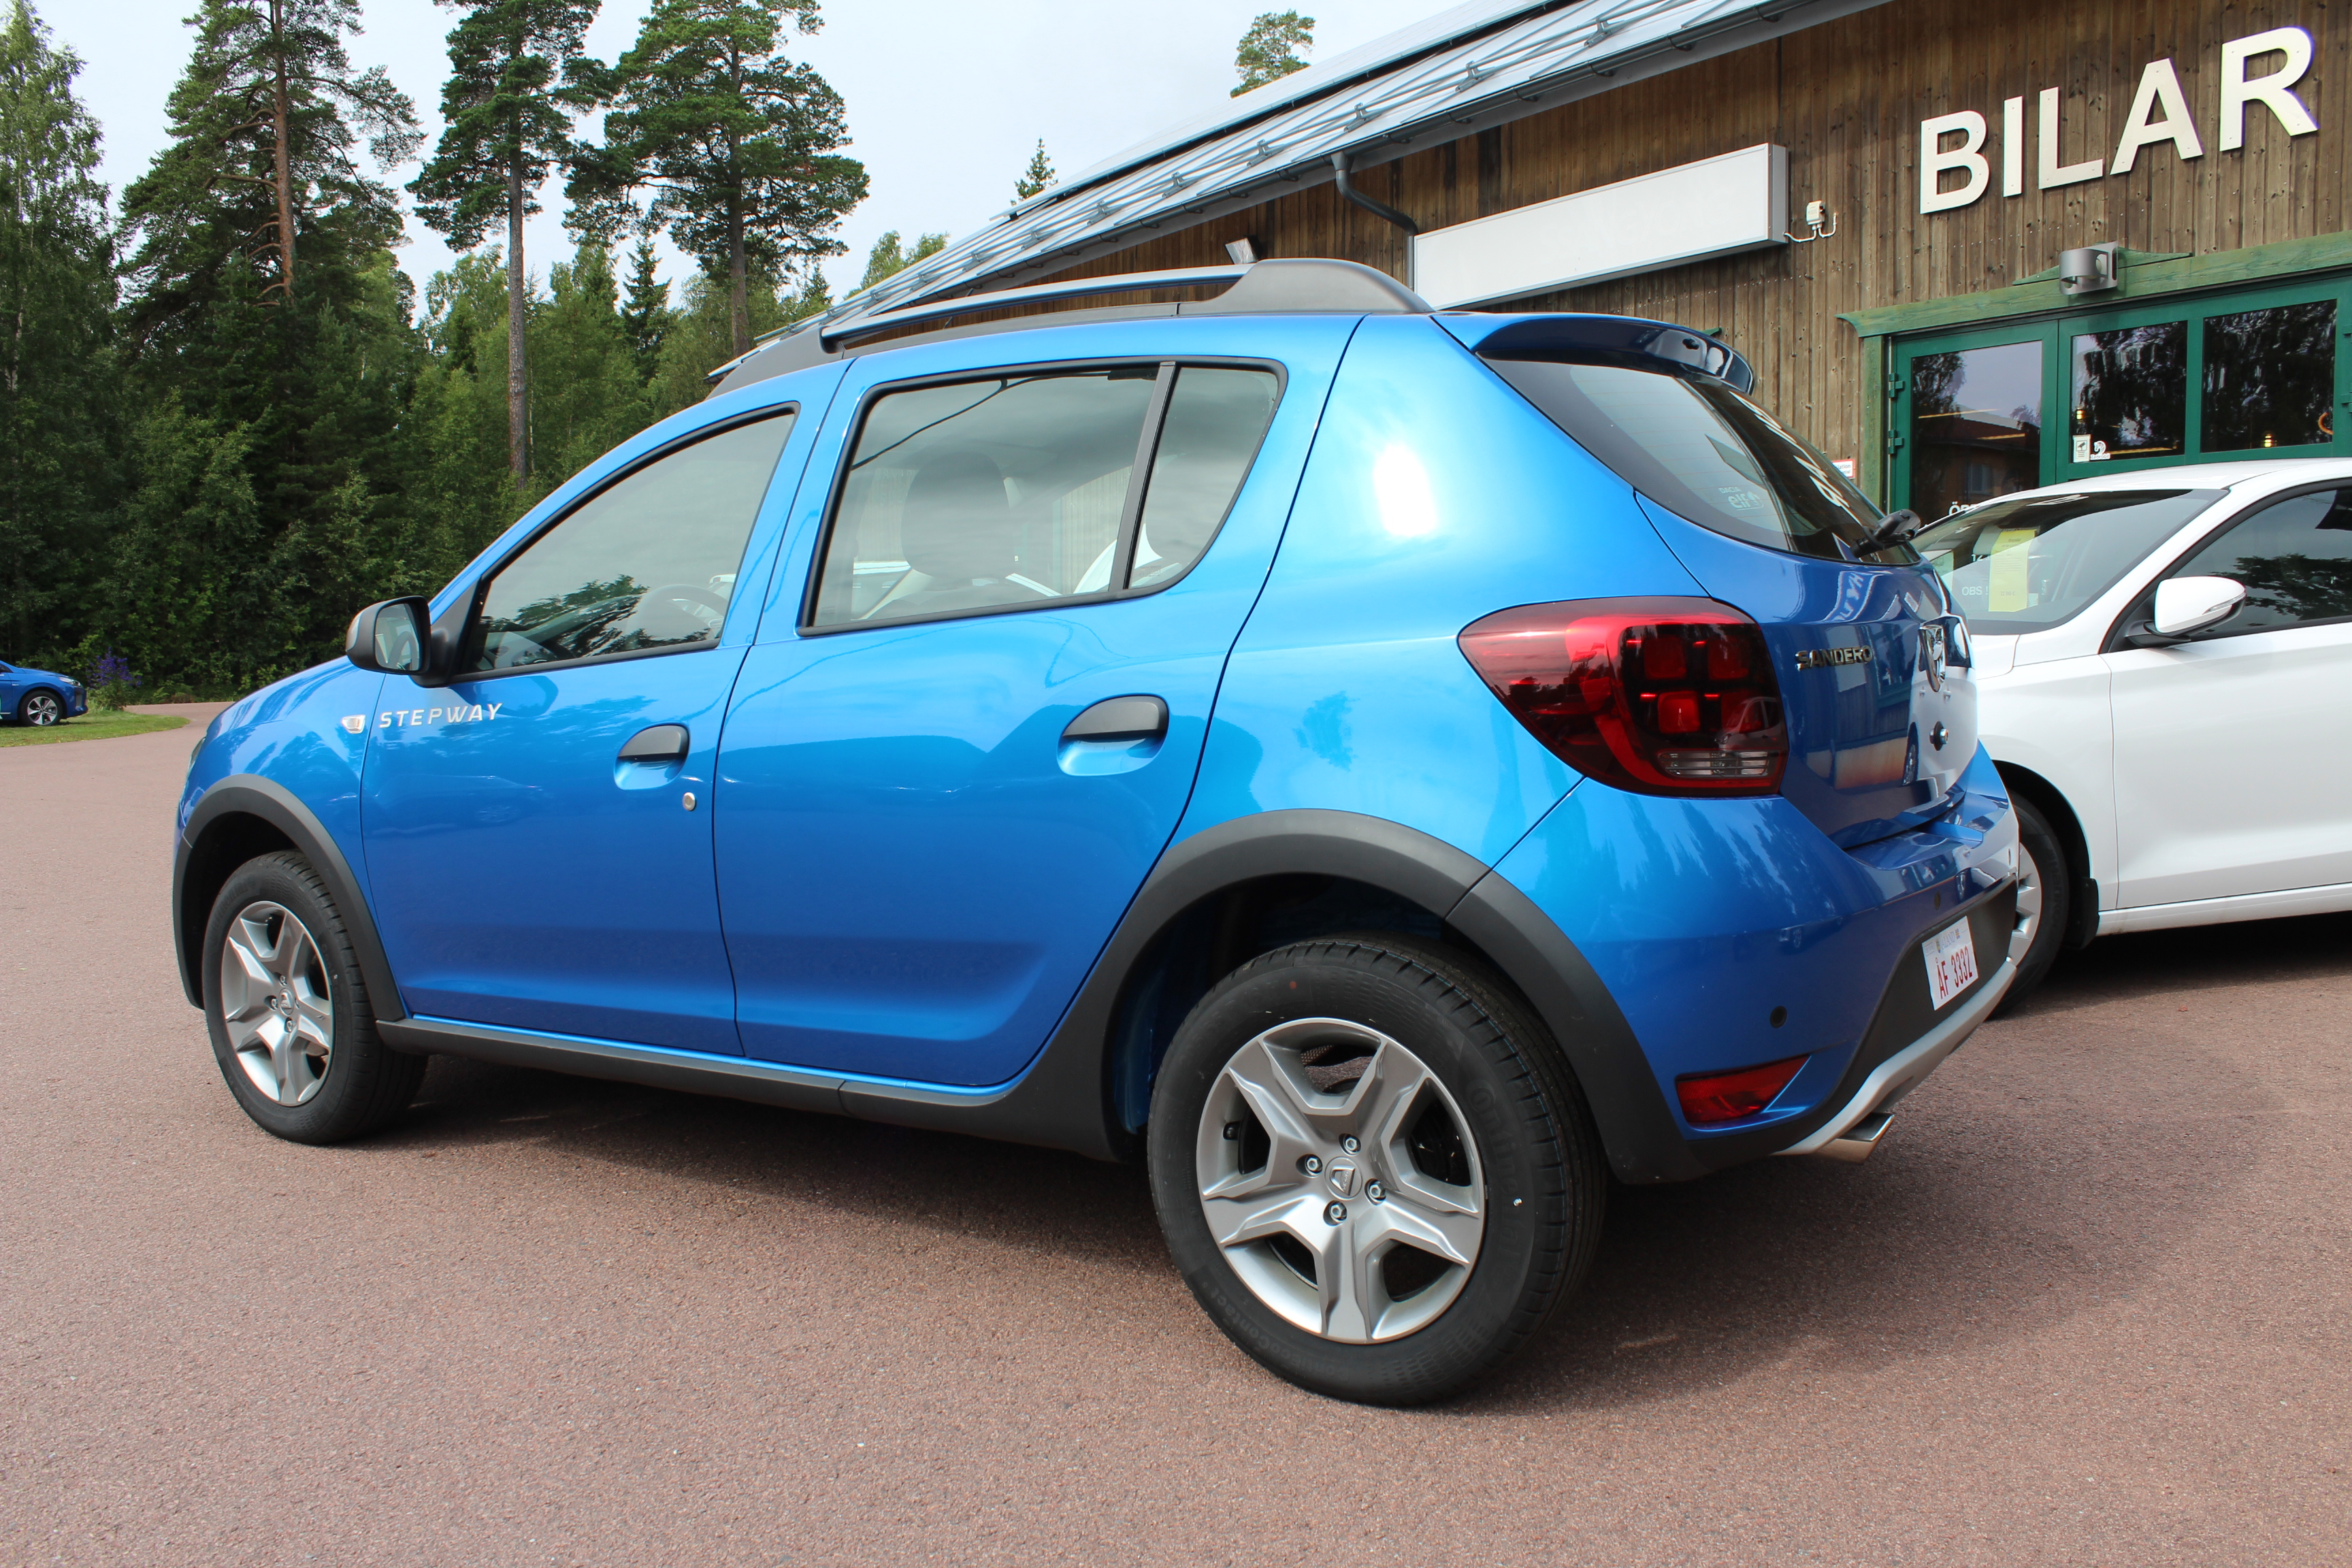 dacia sandero stepway tce 90 easy r automat navigation och ac. Black Bedroom Furniture Sets. Home Design Ideas